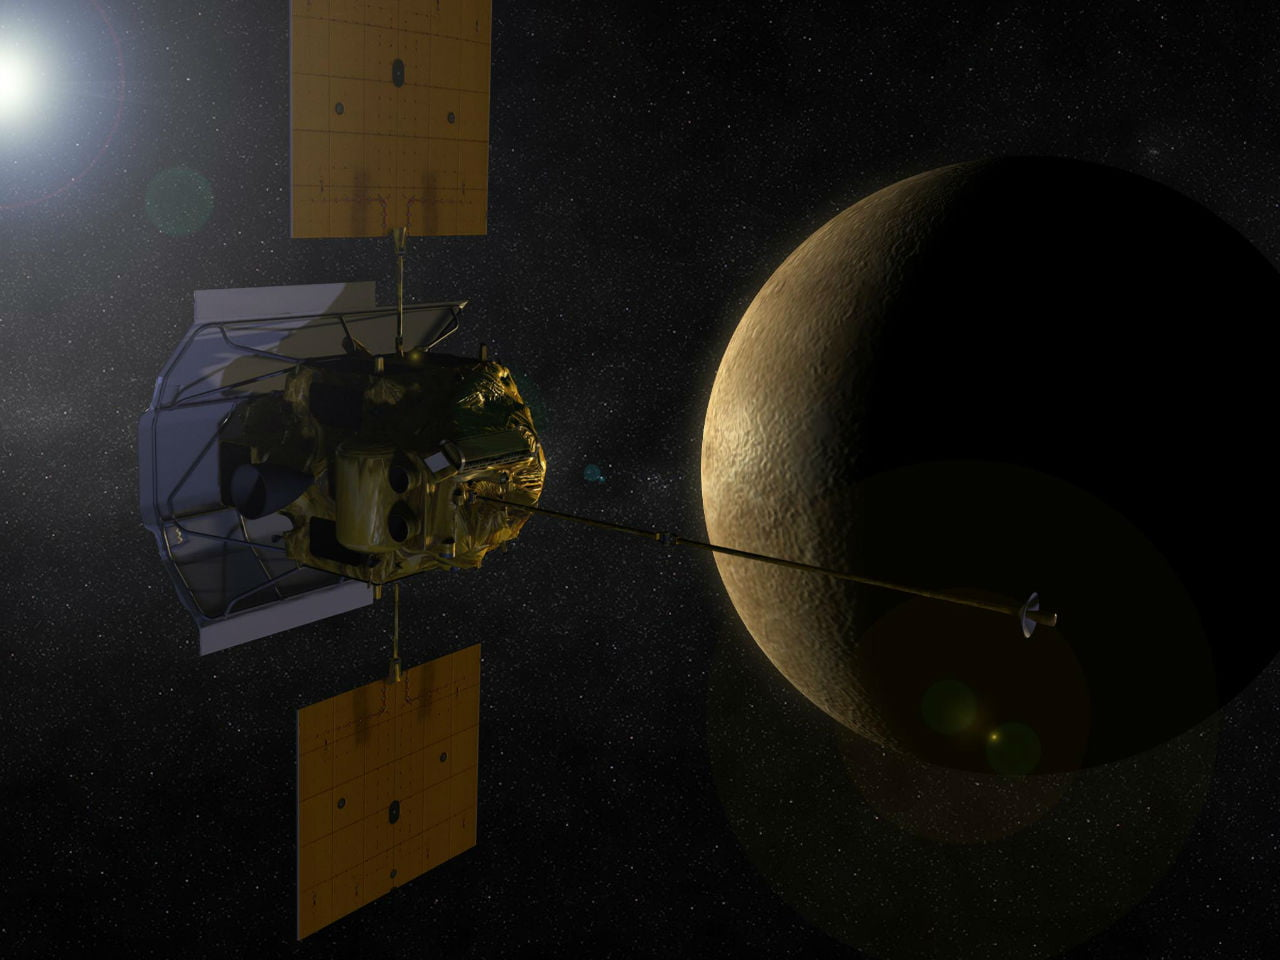 nasa-messenger-probe-mercury-approach